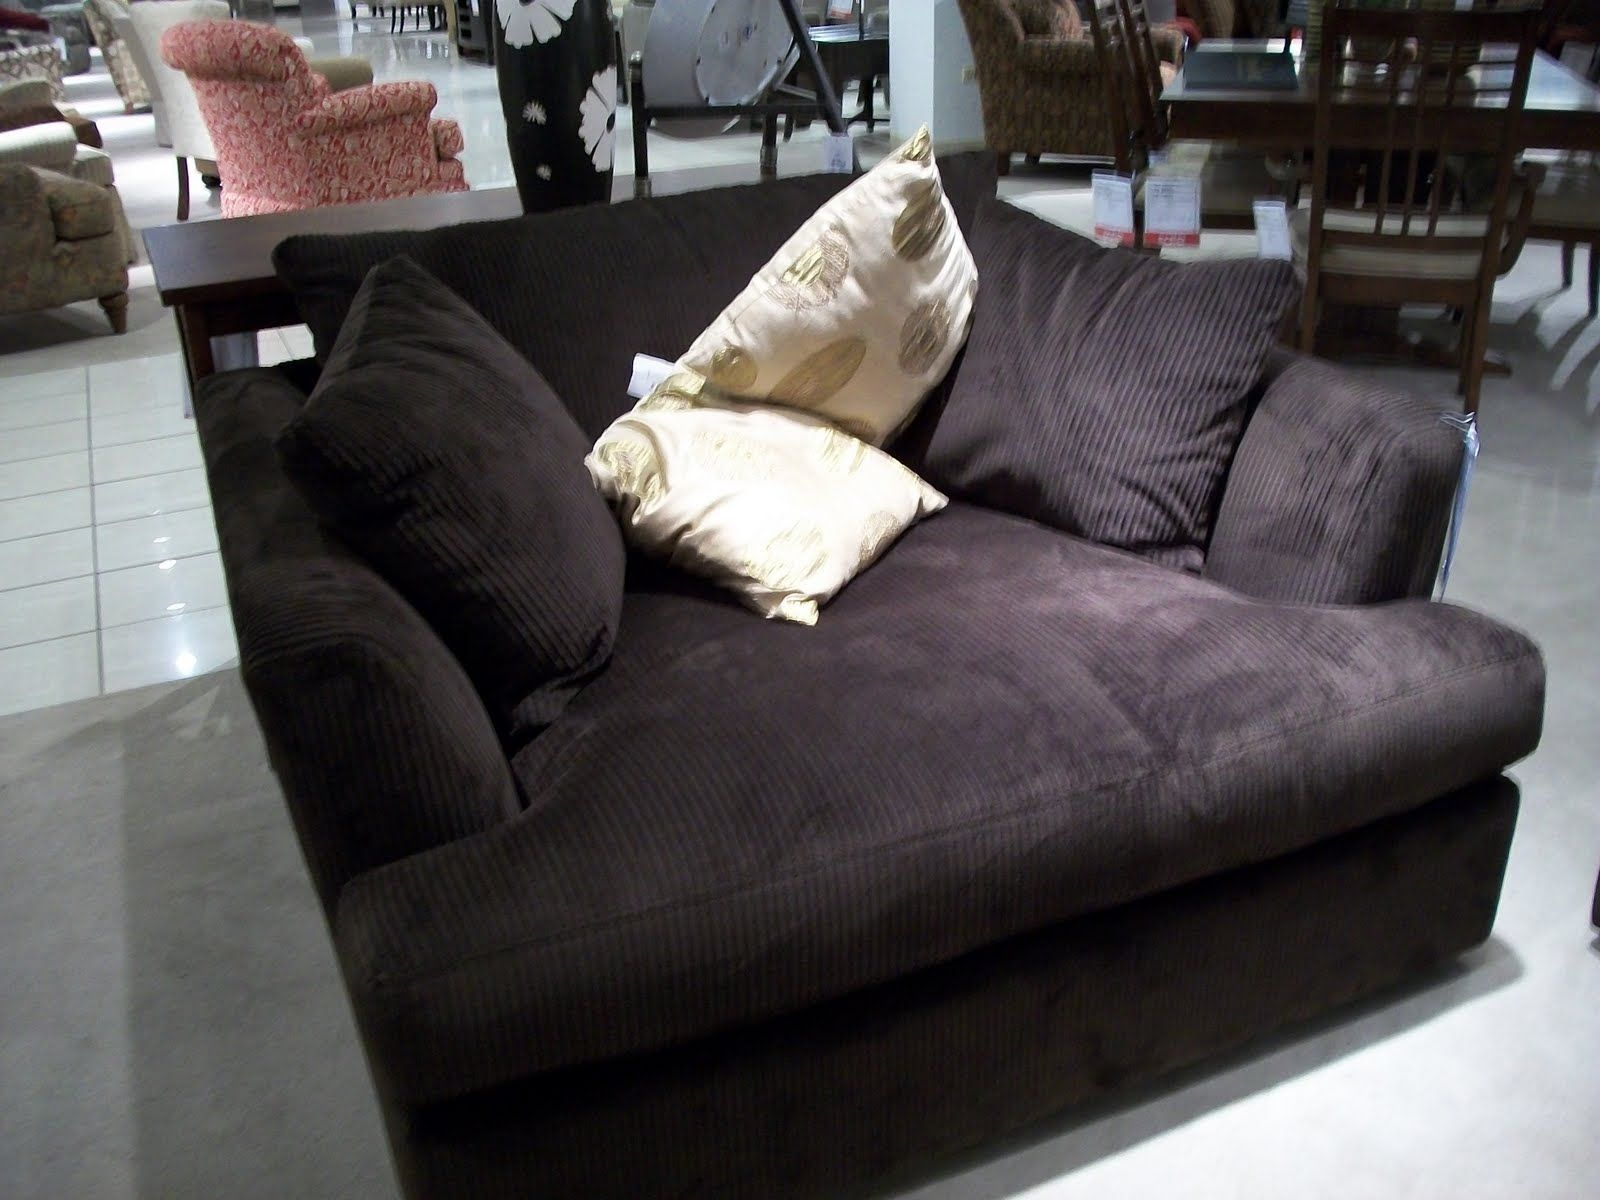 Big comfy oversized armchair where you can snuggle up with